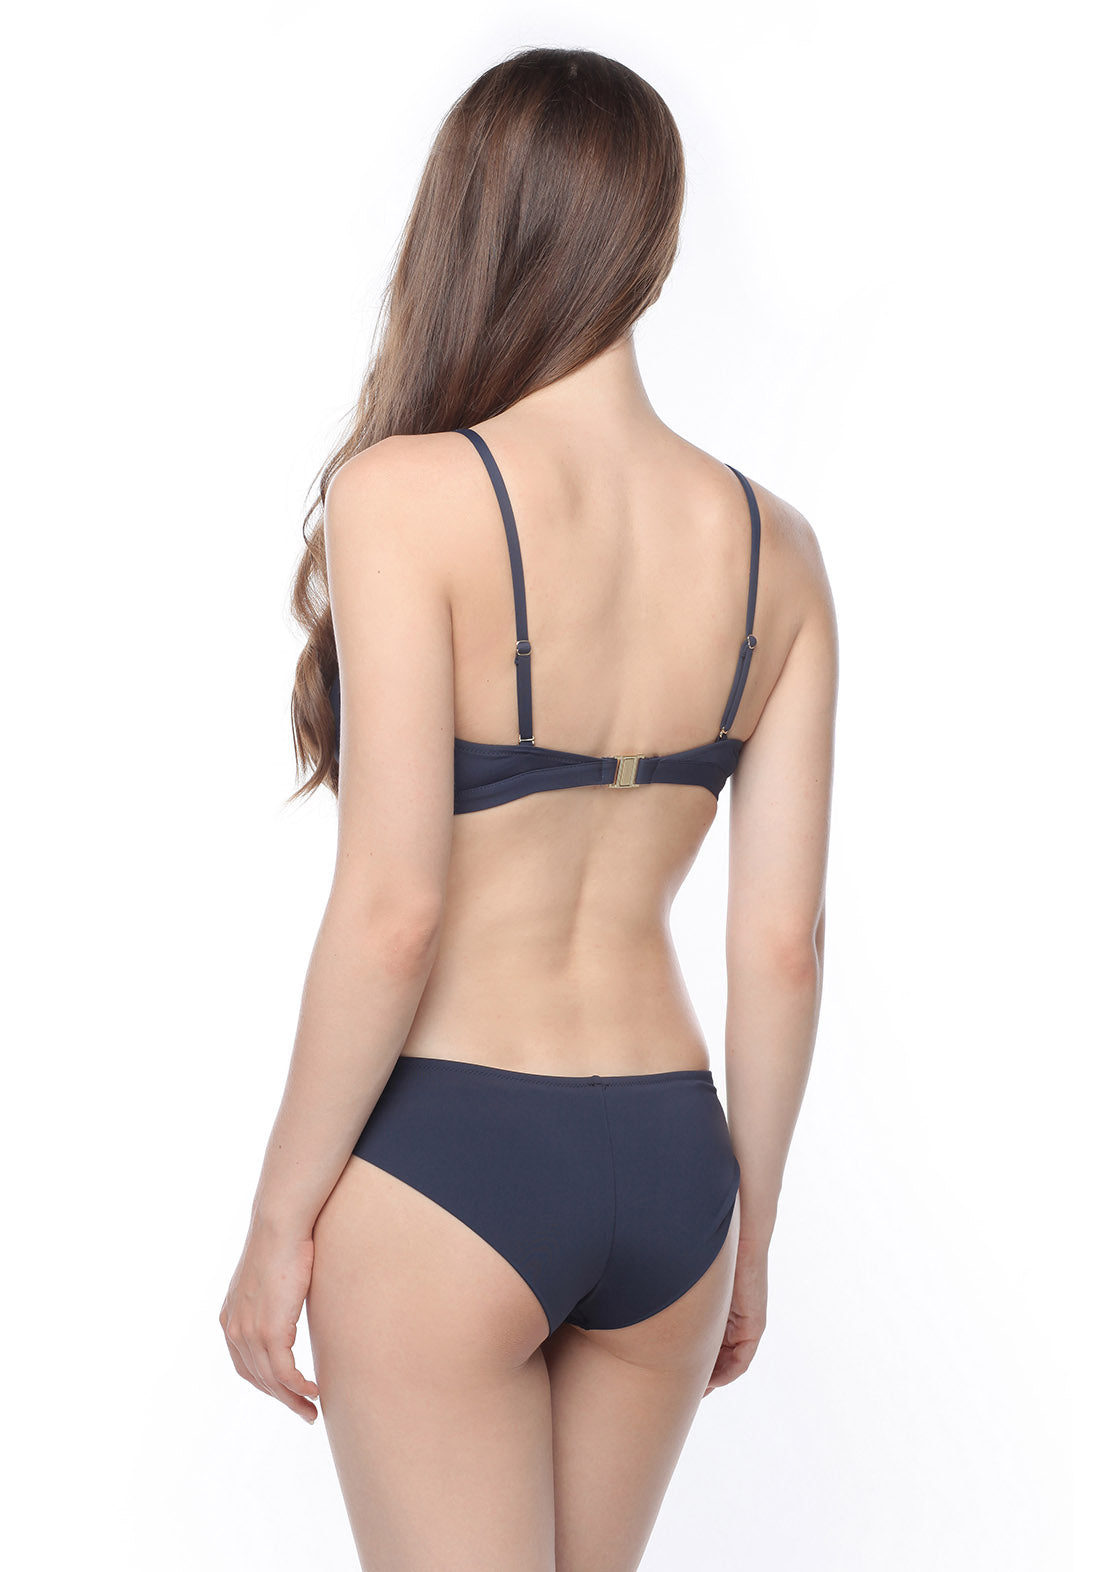 Caprice d'Été Triangle Bra in Navy